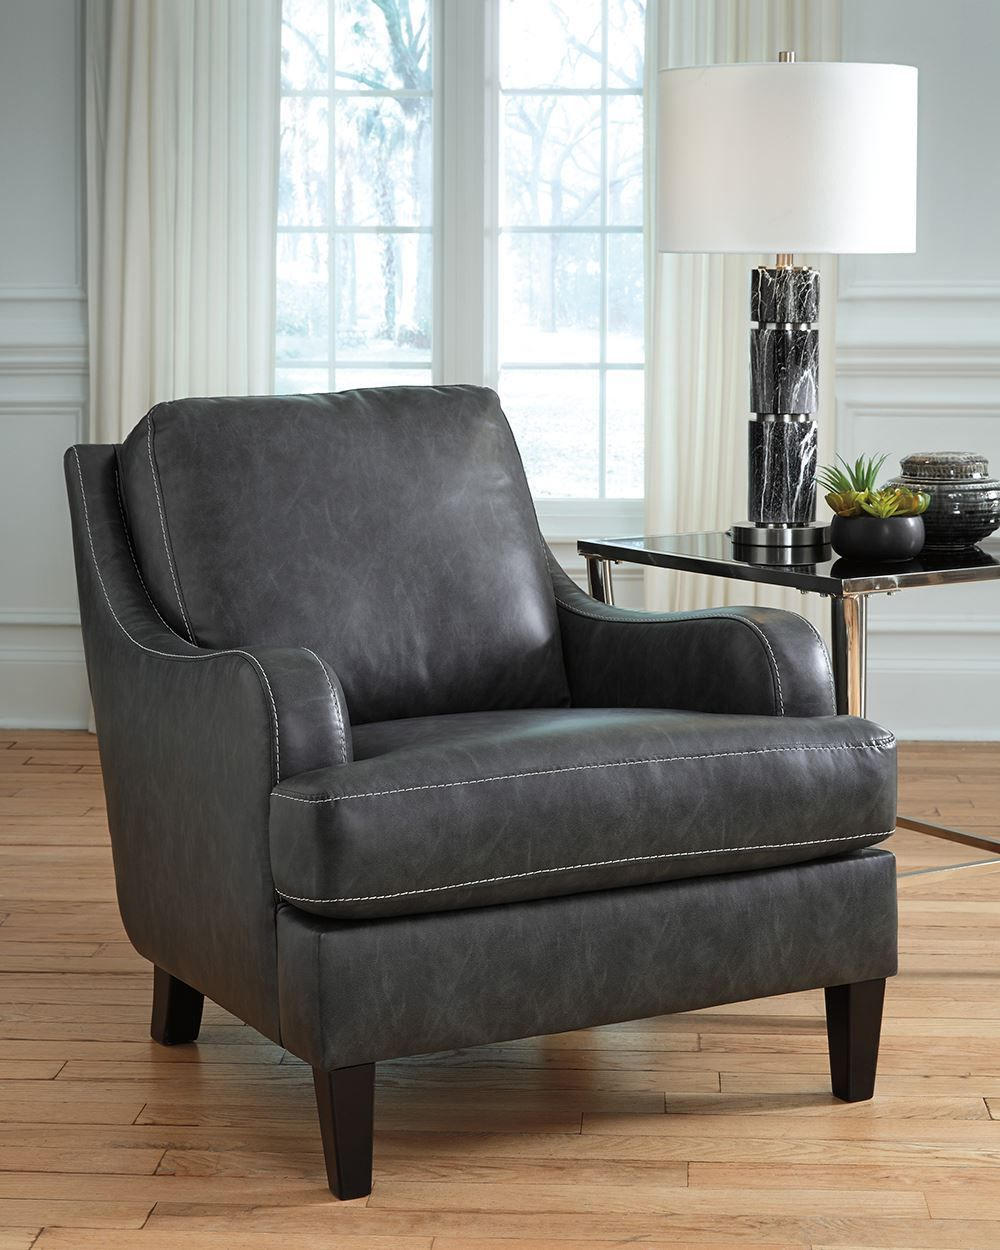 Picture of Tirolo Dark Gray Accent Chair